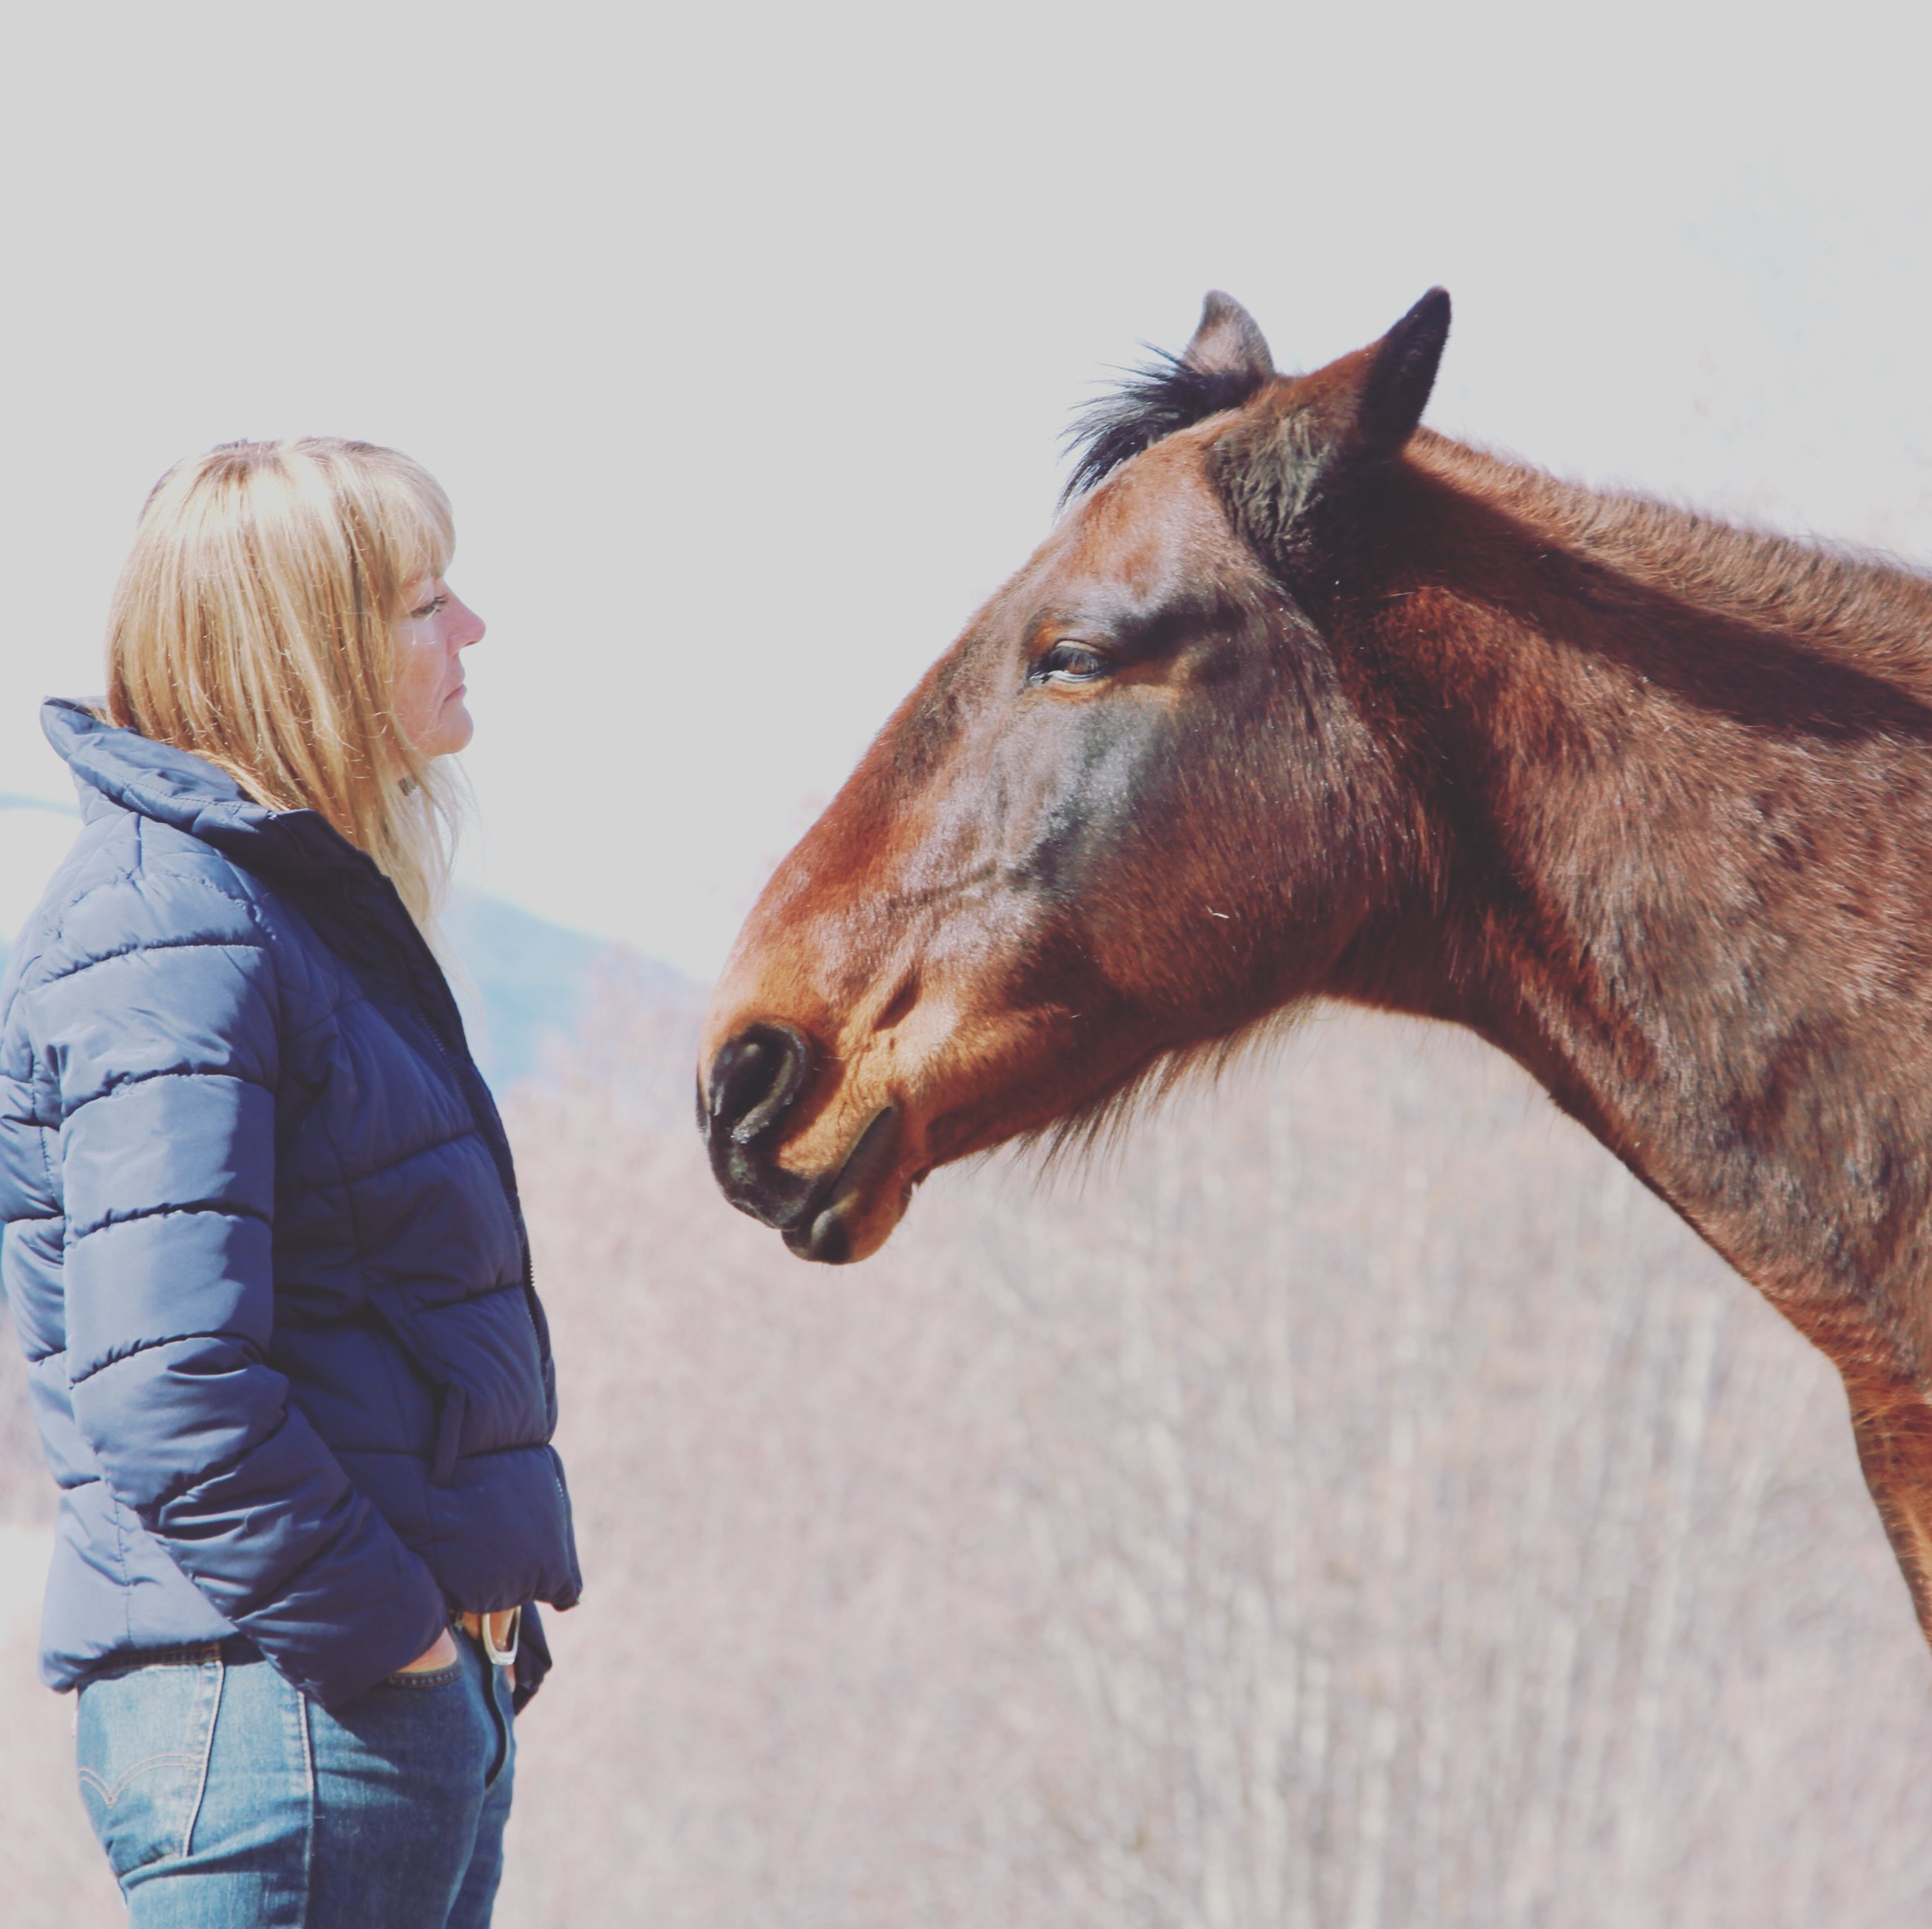 Equine Programs - Connect and interact with a herd of 27 rescue horses. Our equine assisted learning programs are the first of their kind in North America. Add an unforgettable equine experience package to your next group event.